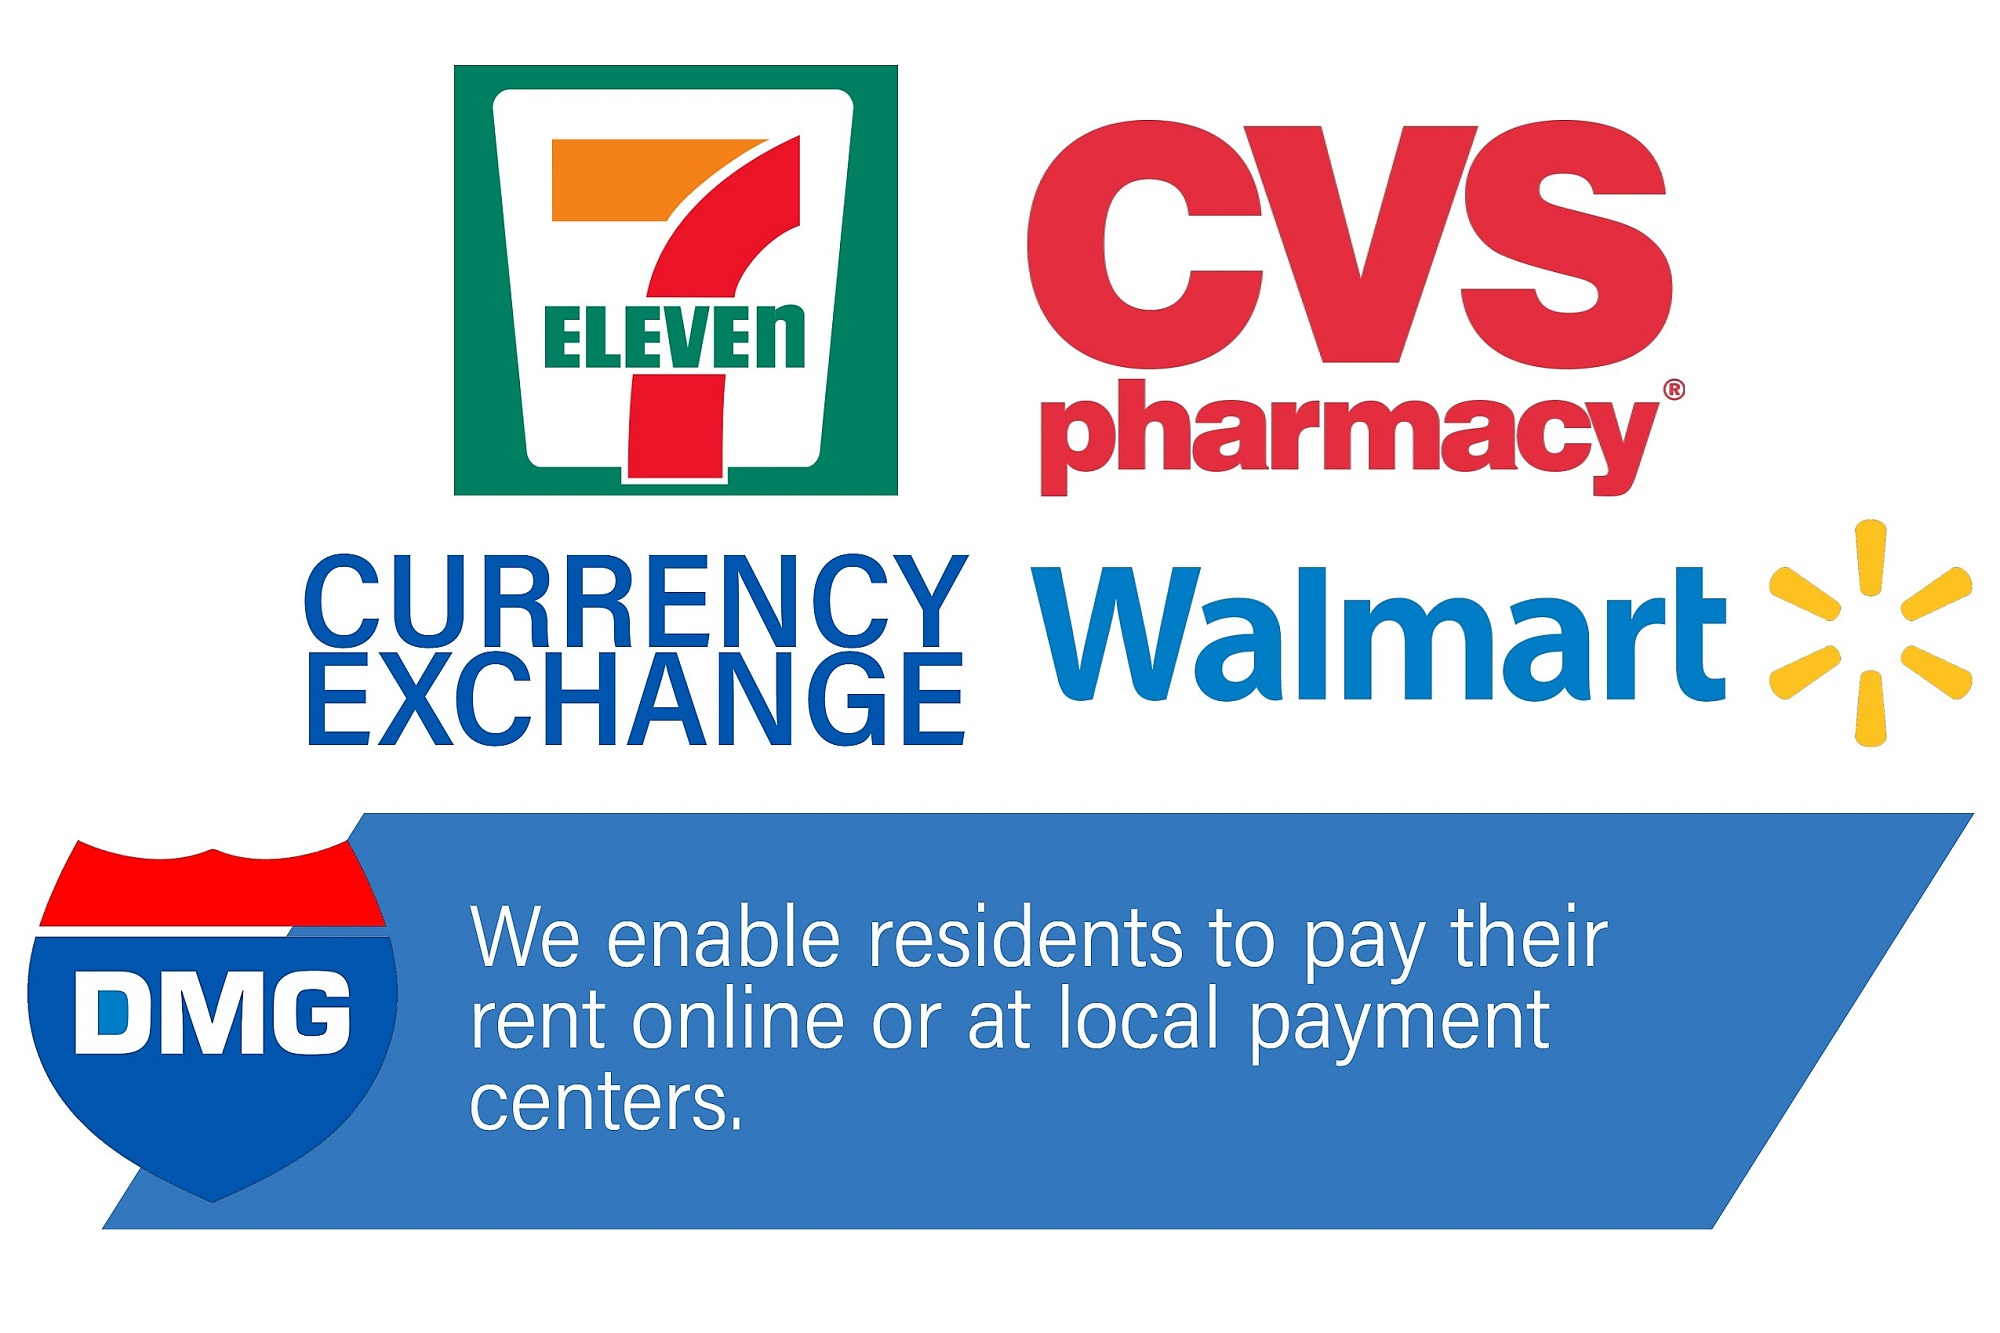 We enable tenant to pay their rent online and a local payment centers.